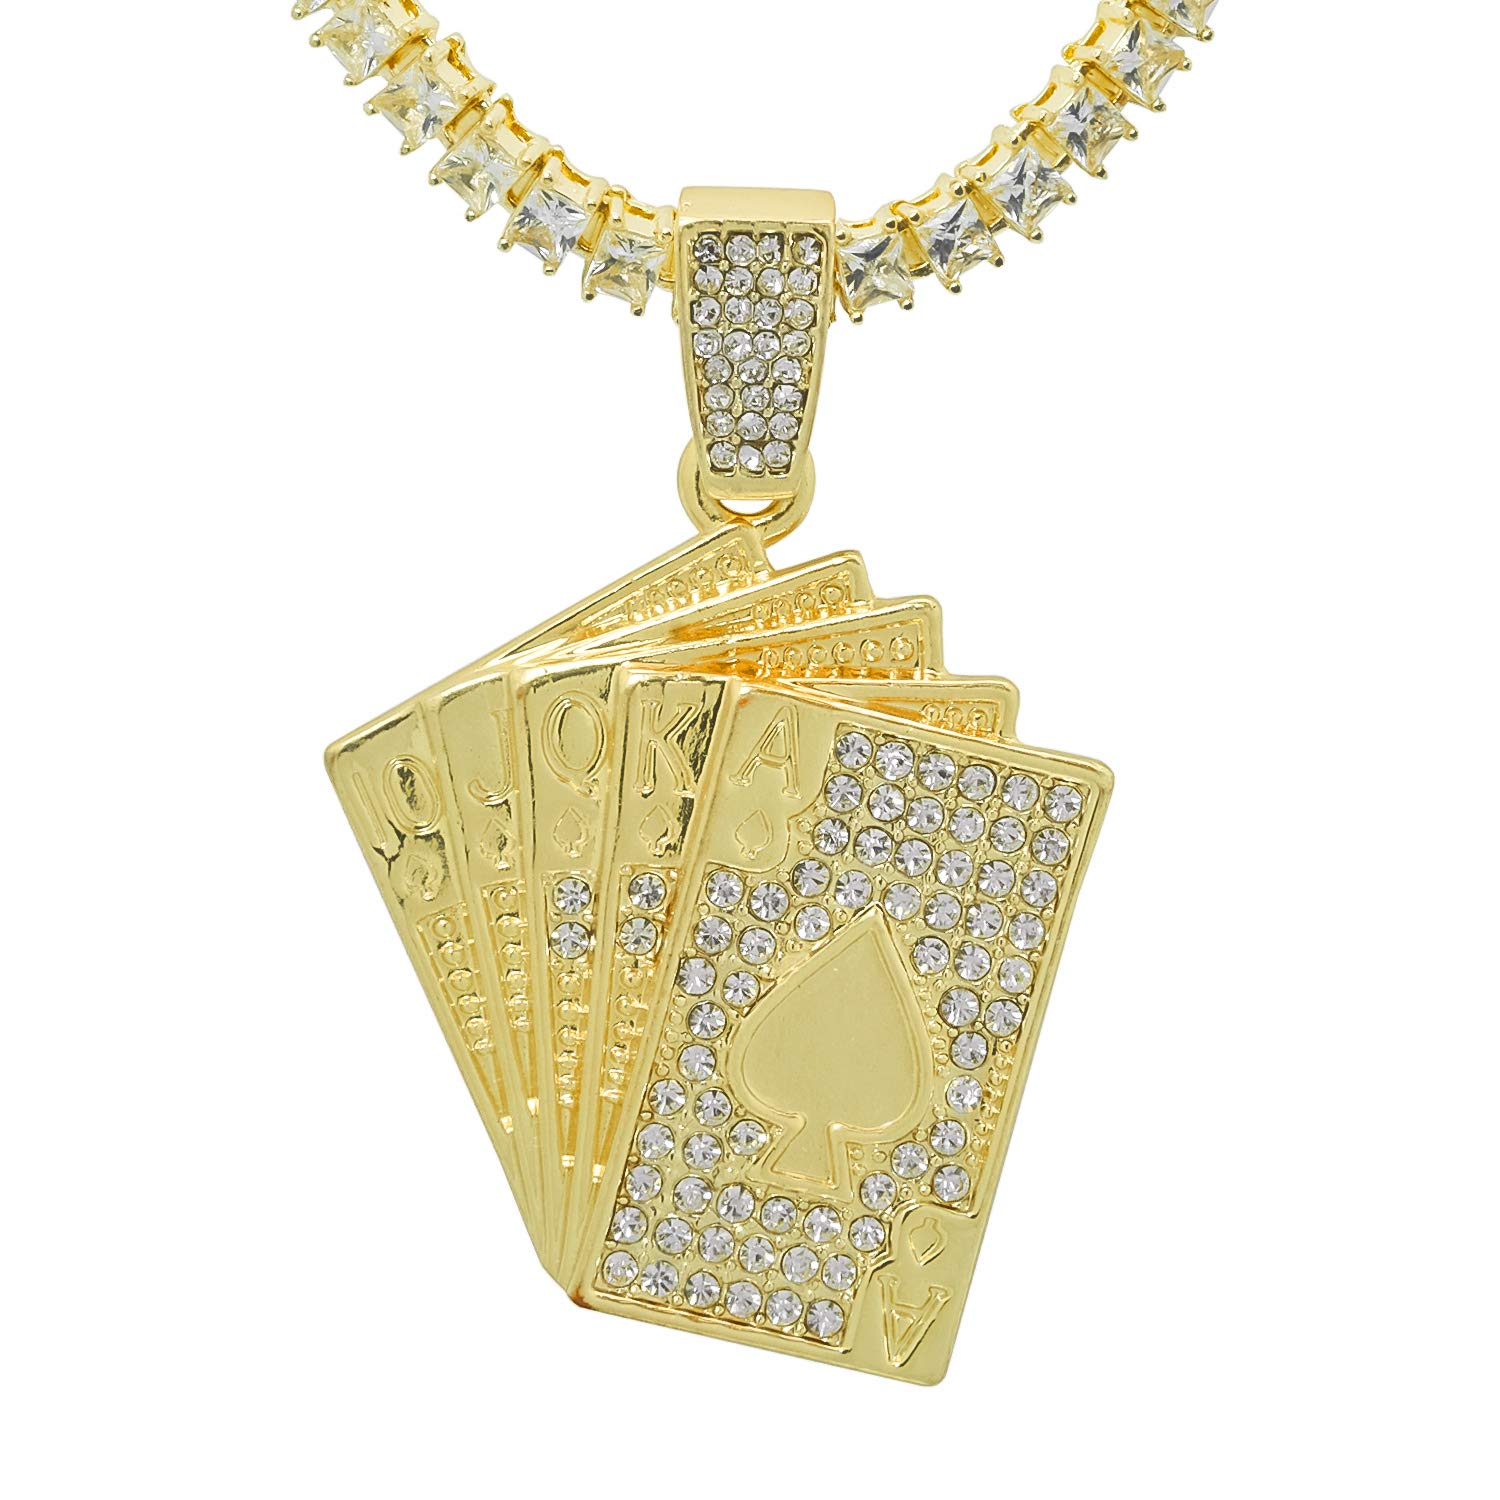 Gold-Tone Iced Out Hip Hop Bling Poker Spade Royal Flush Pendant with Princess Cut Cubic Zirconia 18 Tennis Chain and 24 Rope Chain